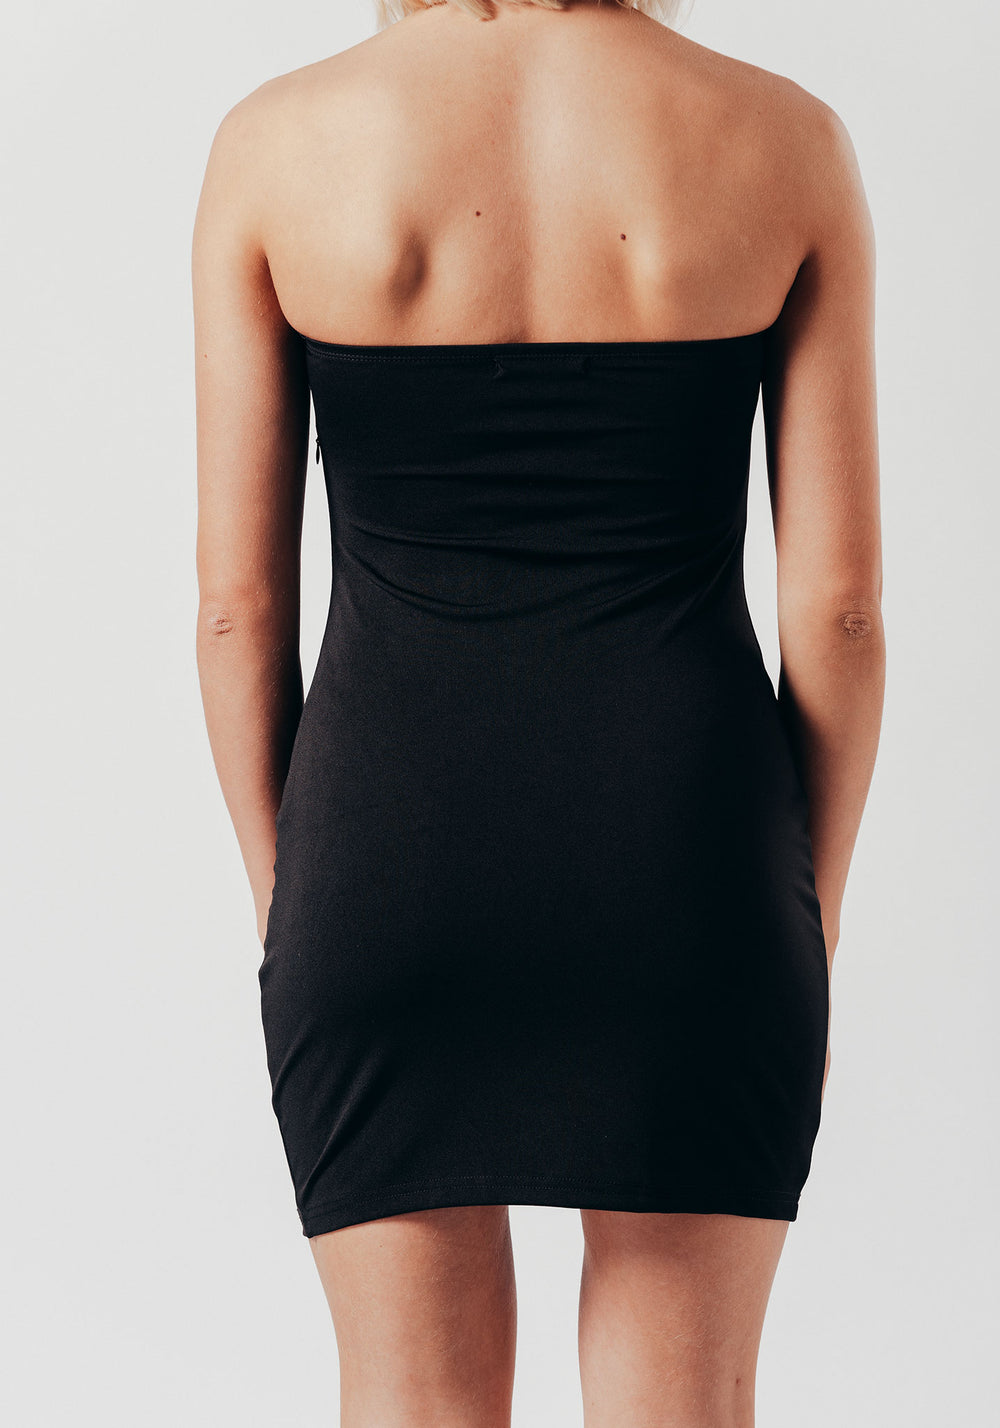 Black Buckle Detail Mini Body con Dress